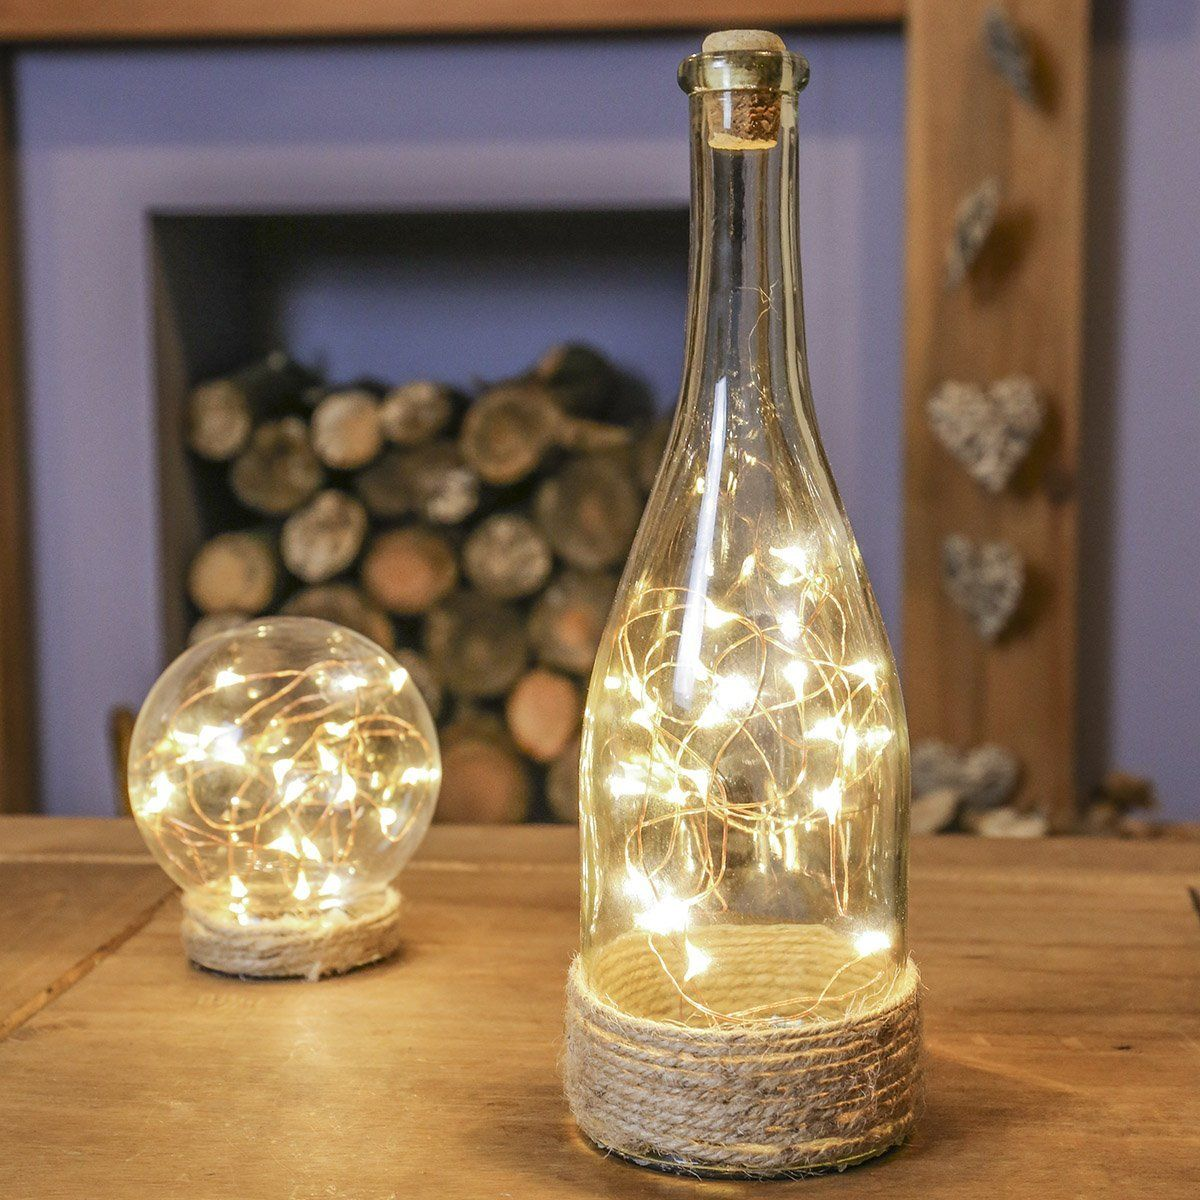 herbst weihnachtsdeko glas flasche mit kupferdraht led lichtern warmwei von festive lights. Black Bedroom Furniture Sets. Home Design Ideas